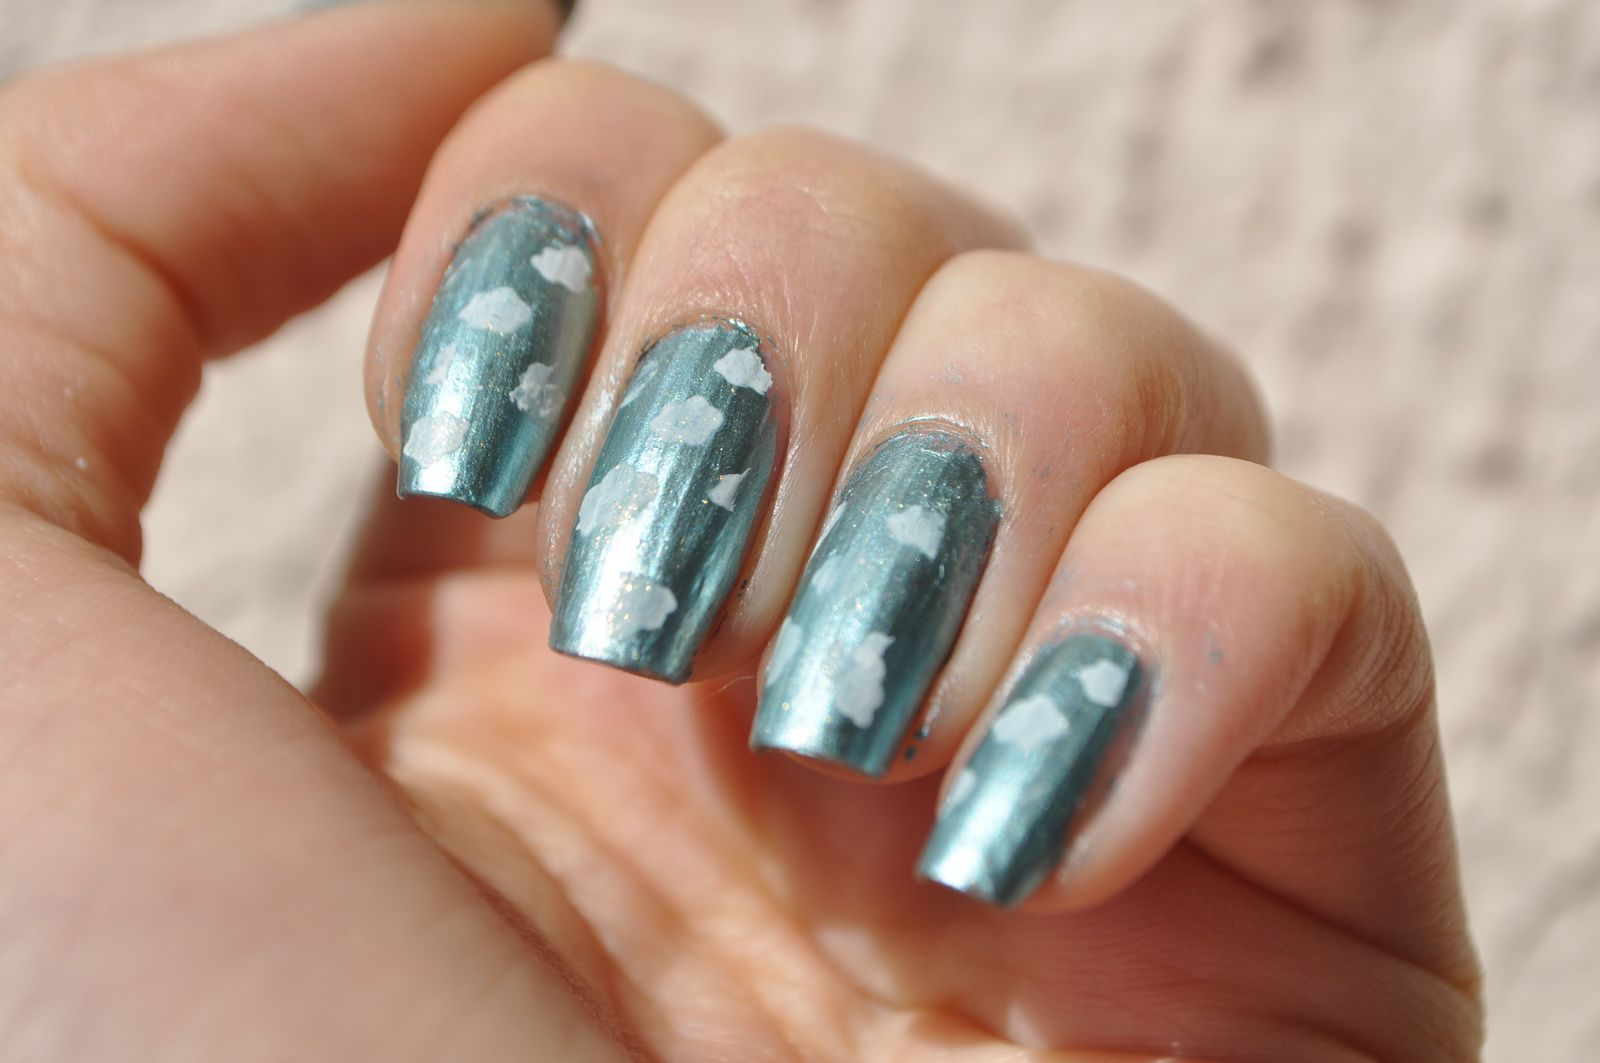 [Nailstorming] Nail by men/sister